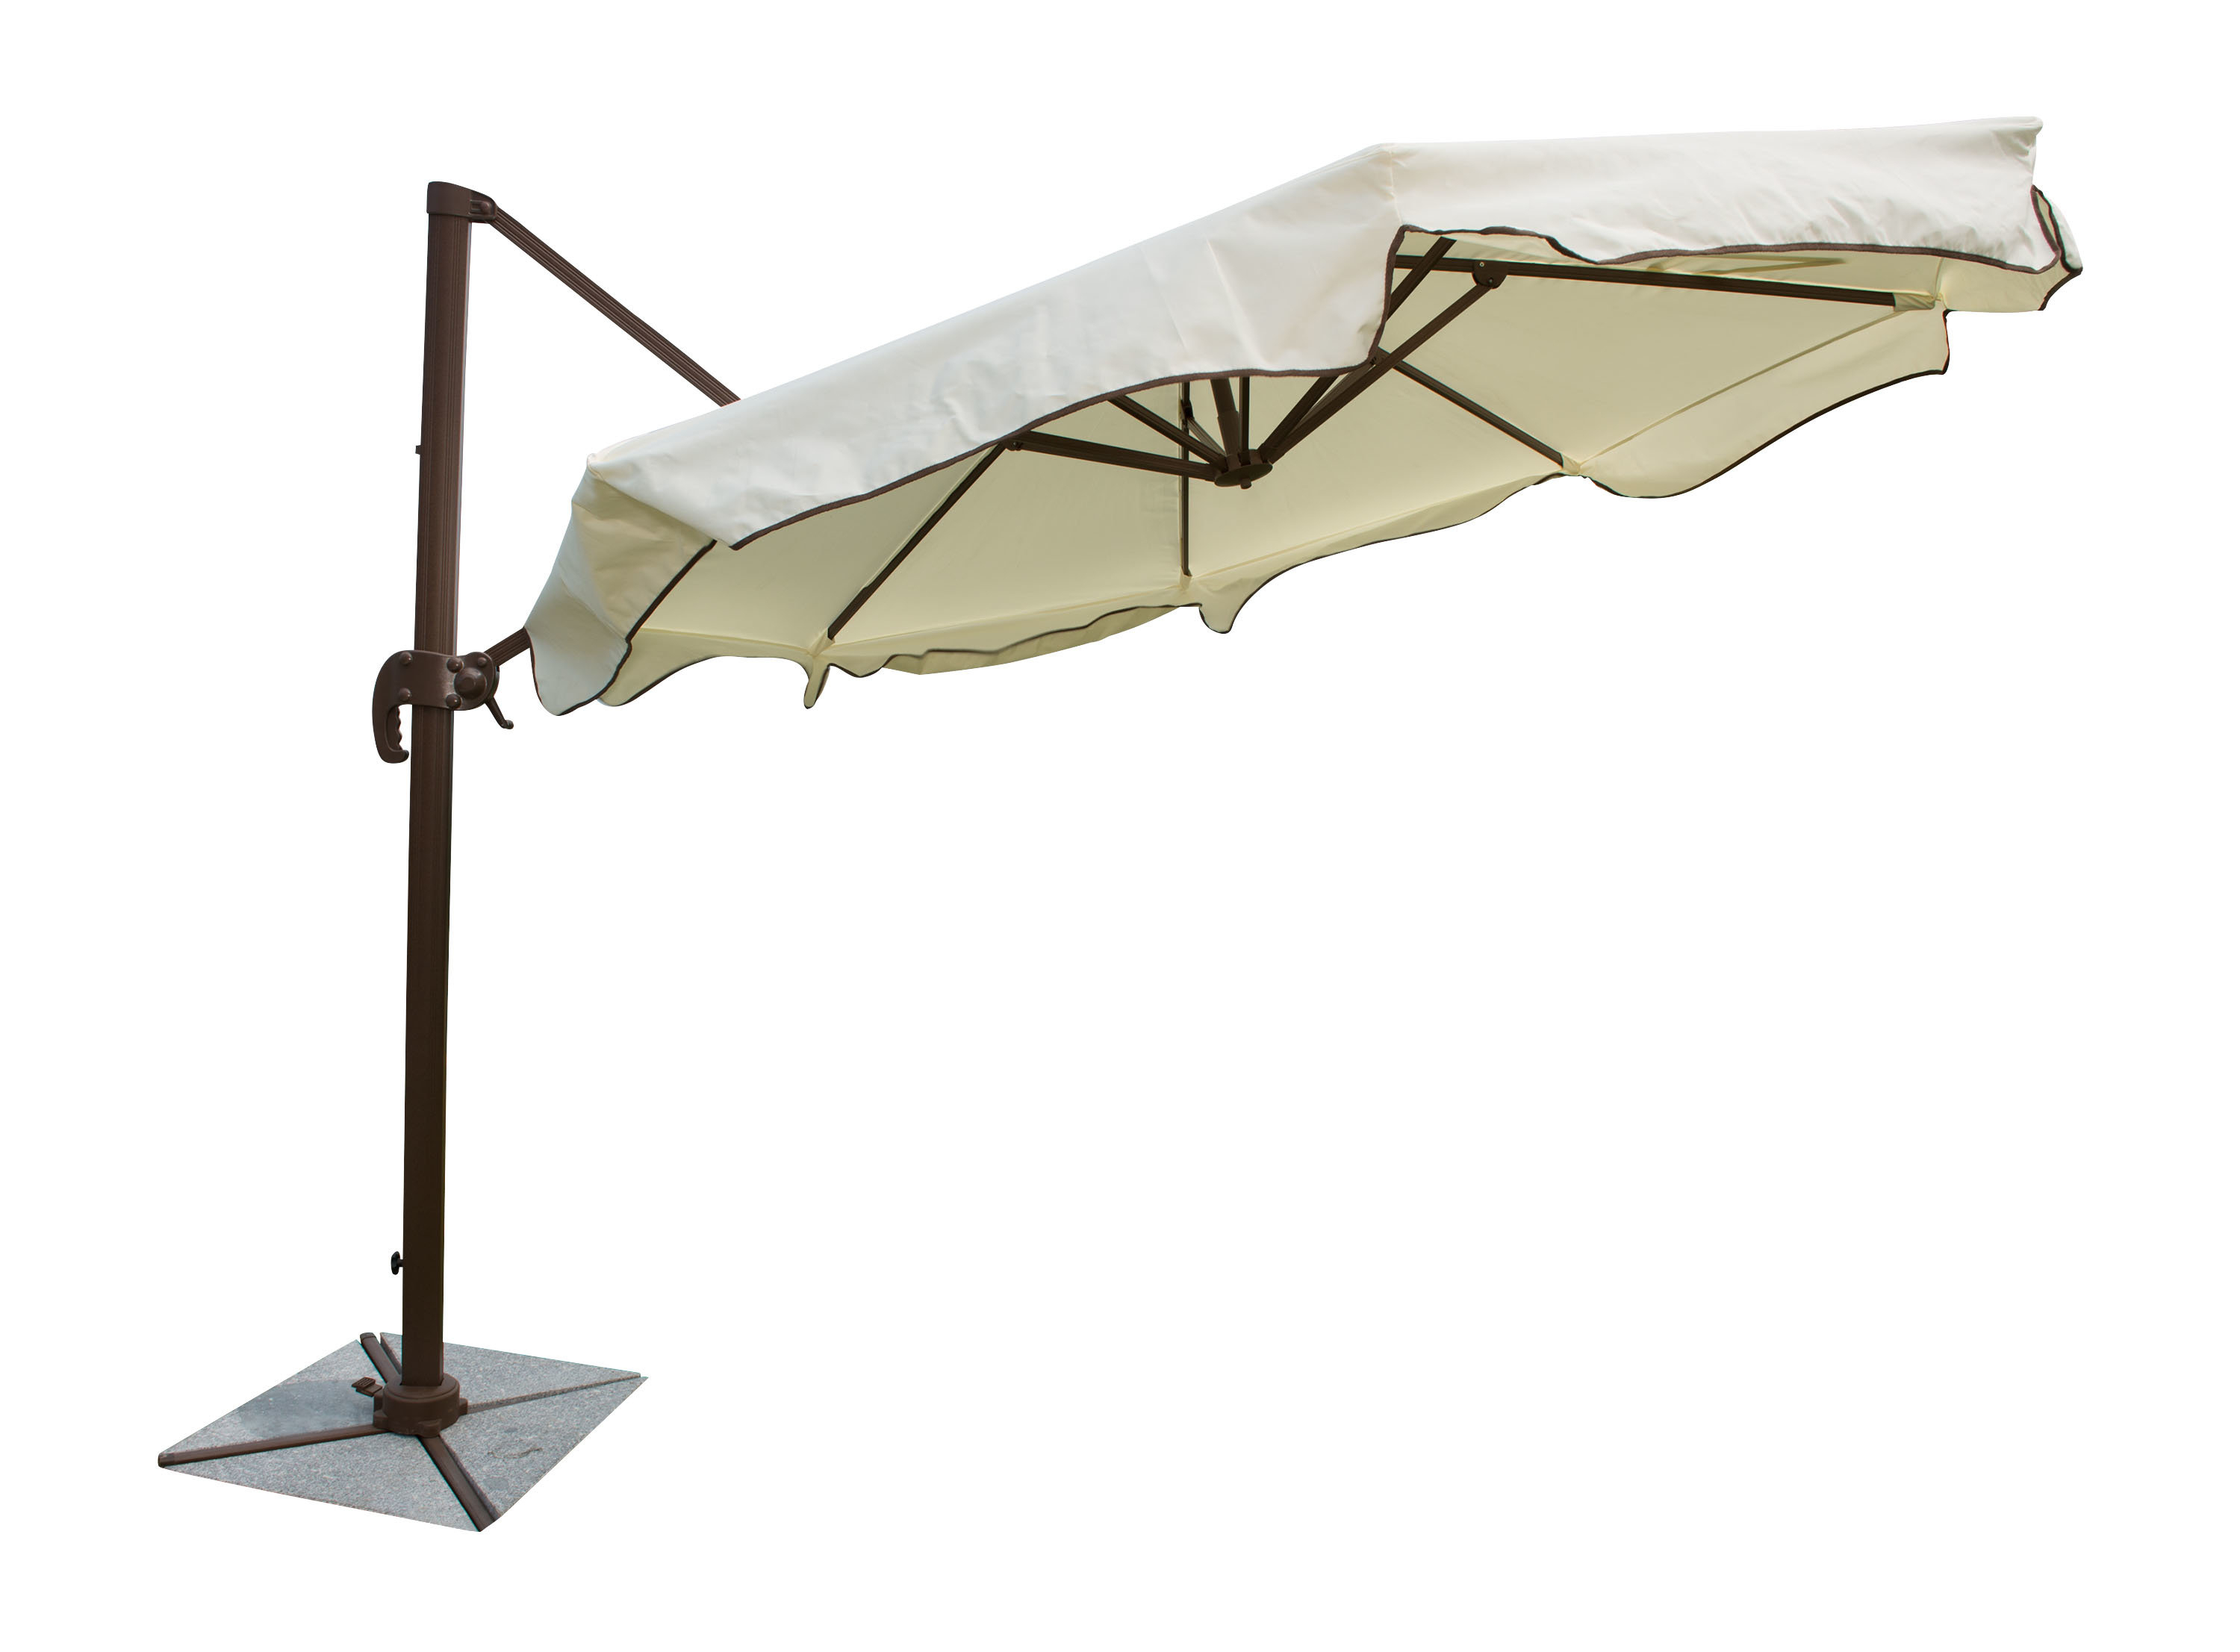 Widely Used Island Breeze 10' Cantilever Umbrella Throughout Voss Cantilever Sunbrella Umbrellas (View 20 of 20)